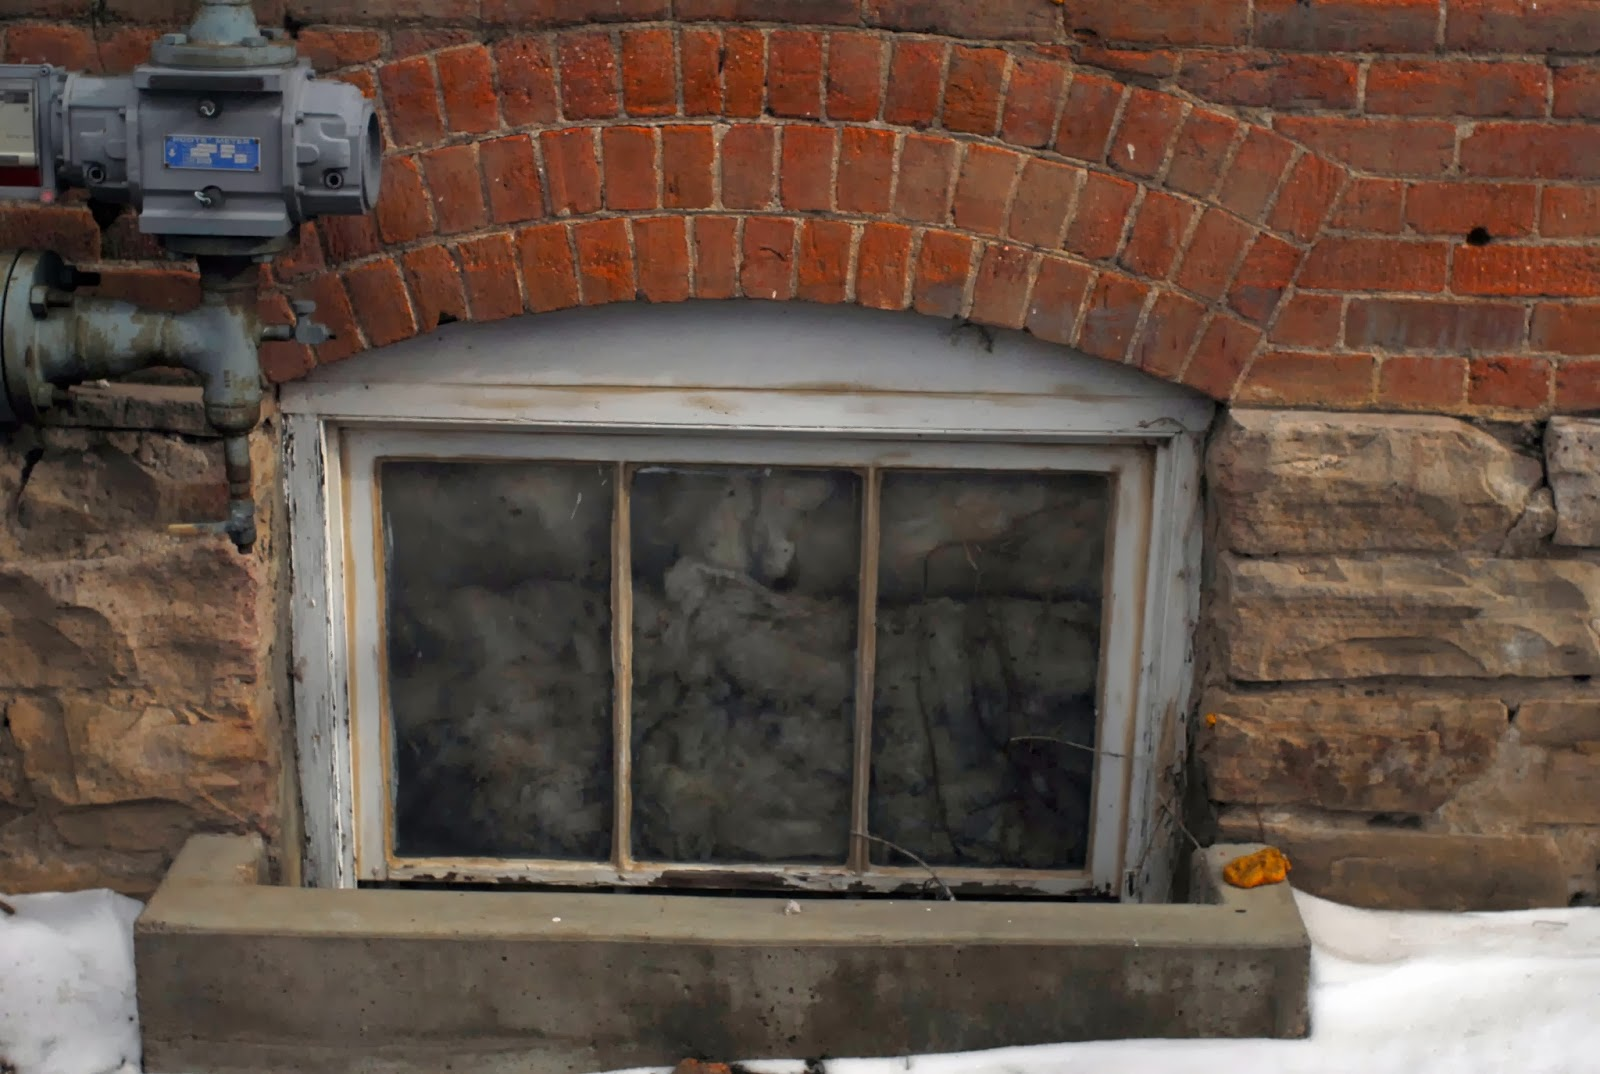 Ground Floor Window : Windsor milling and elevator company architectural